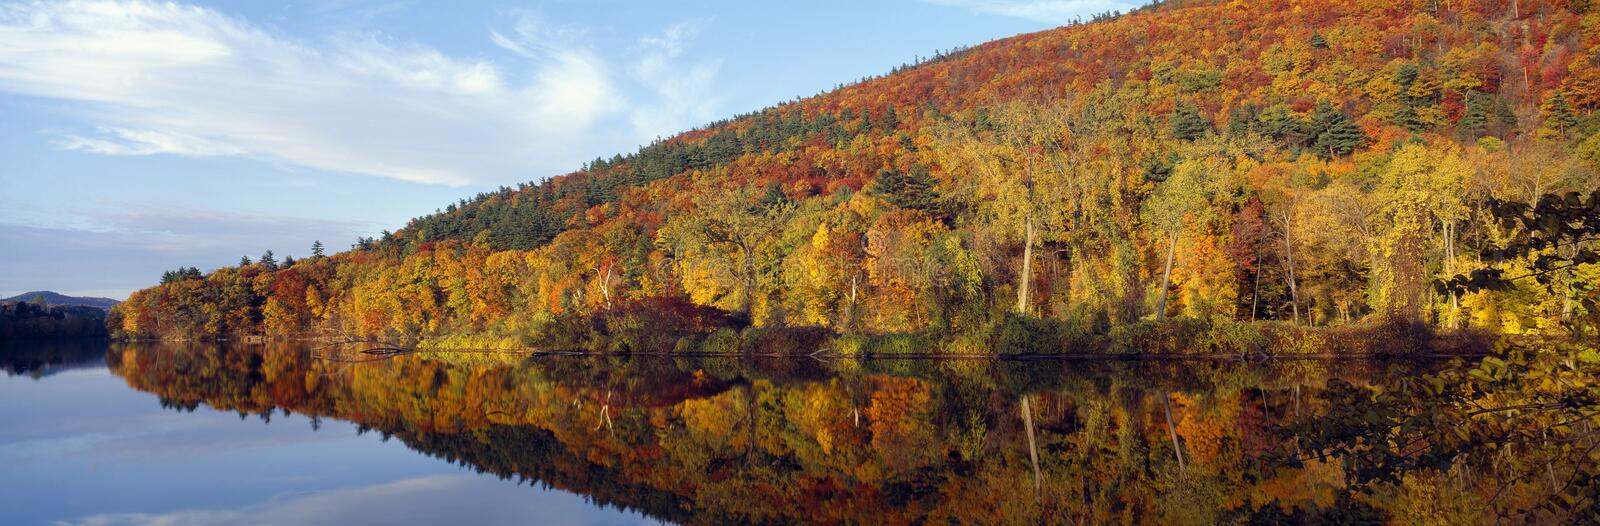 Connecticut River royalty free stock photography